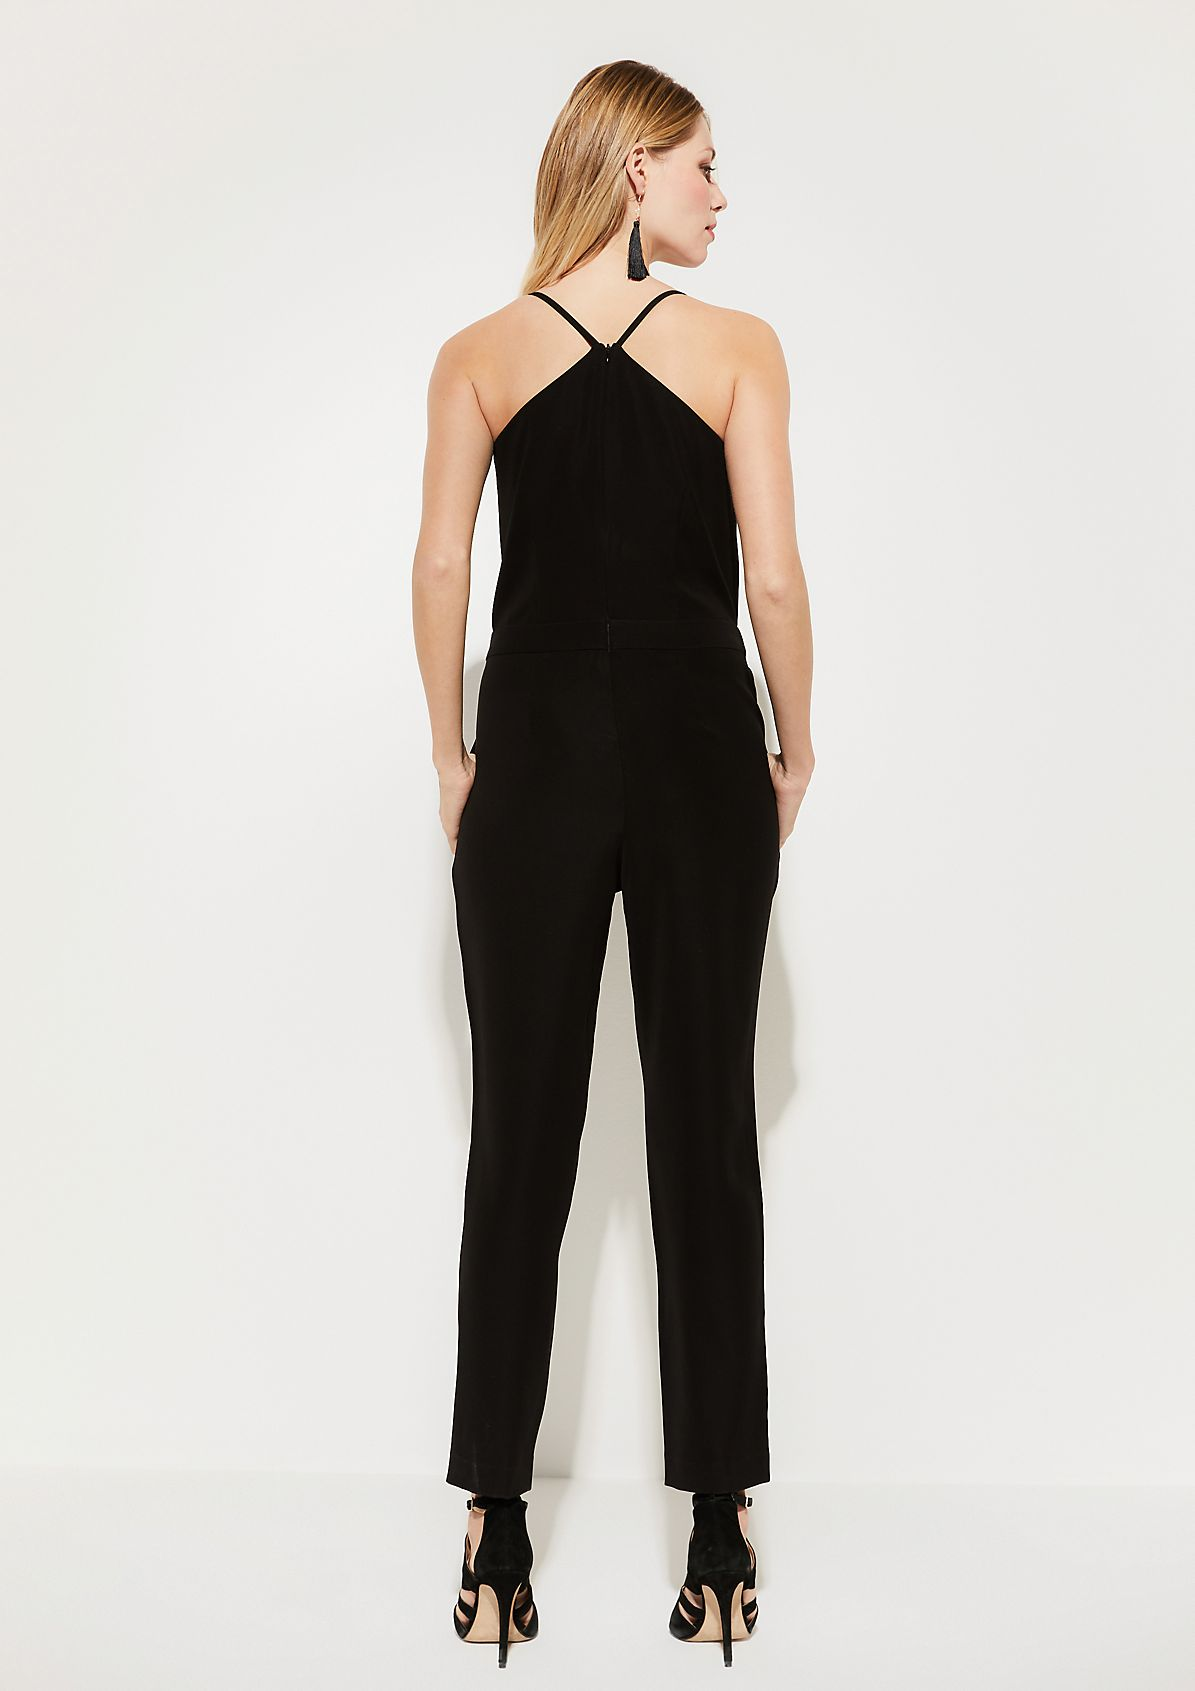 Jumpsuit with spaghetti straps from comma